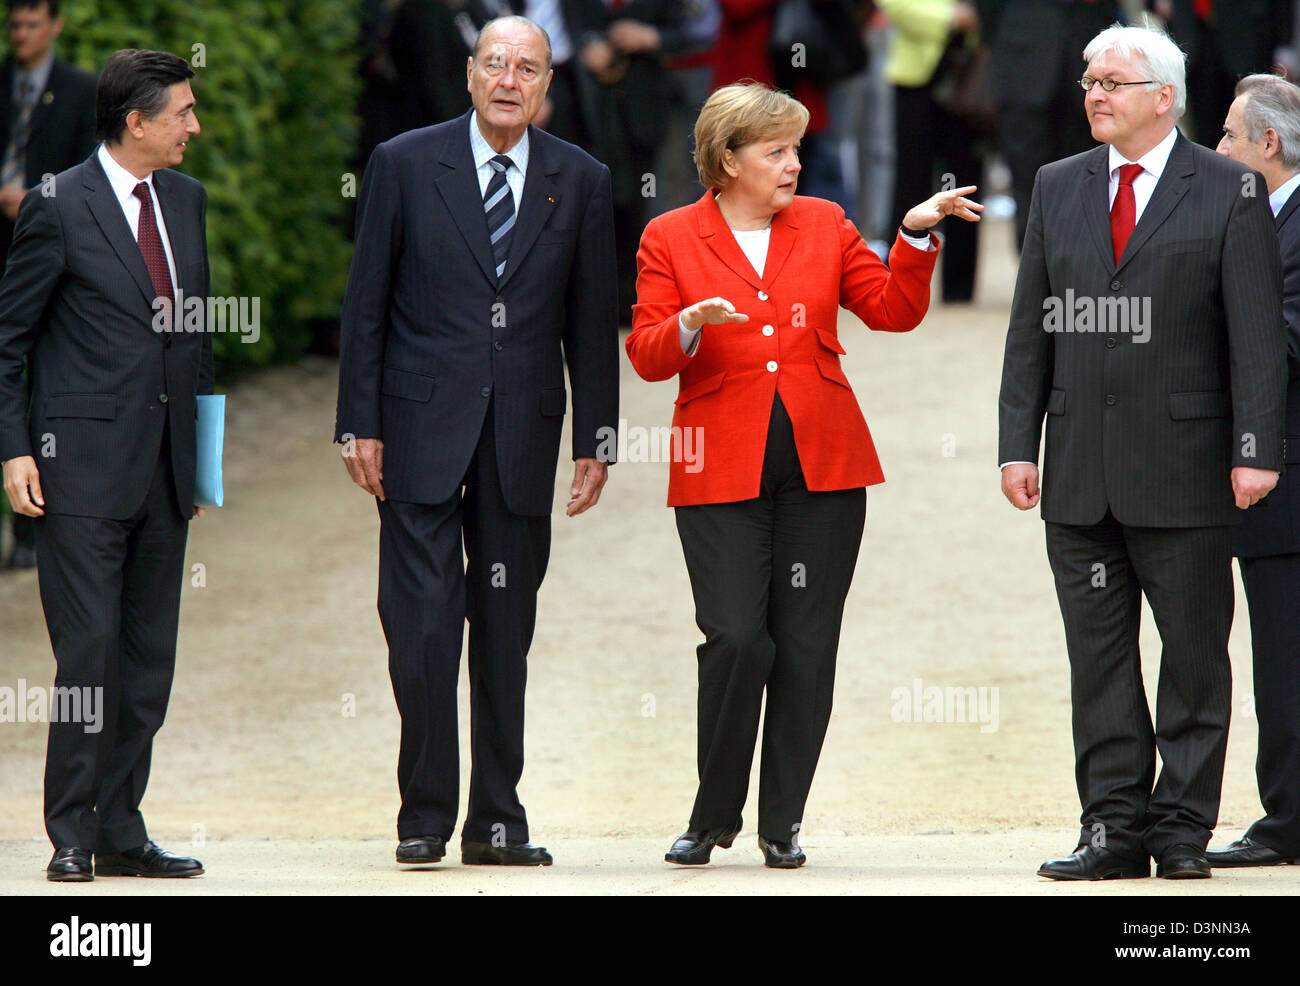 (L-R) French Foreign Minister Philippe Douste-Blazy, French President Jacques Chirac, German Chancellor Angela Merkel - Stock Image